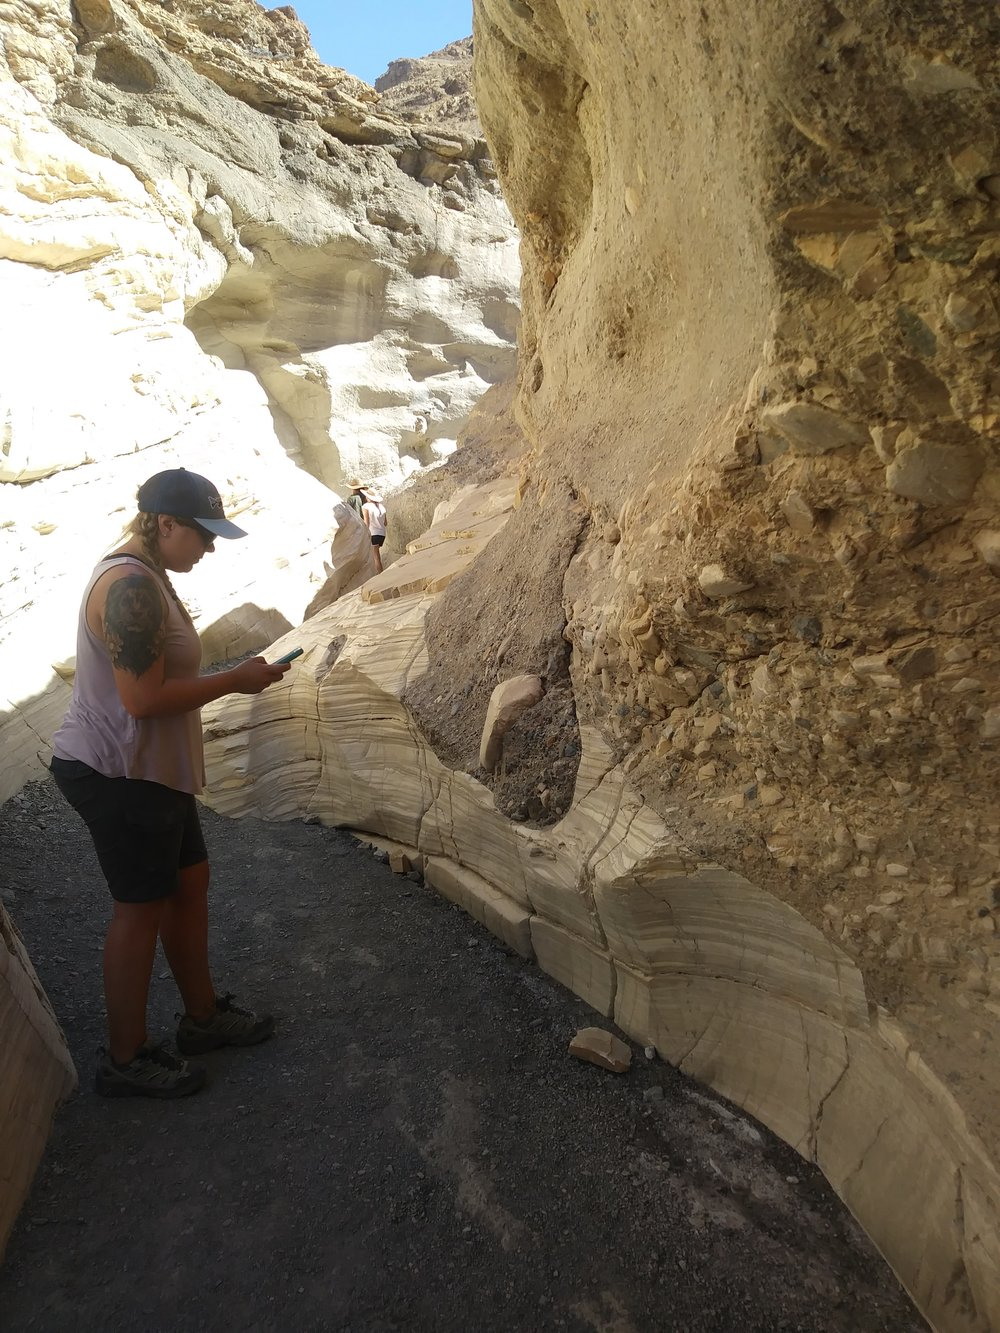 Shelby Isom examining scours in the Noonday Dolomite at Mosaic Canyon, Death Valley NP.